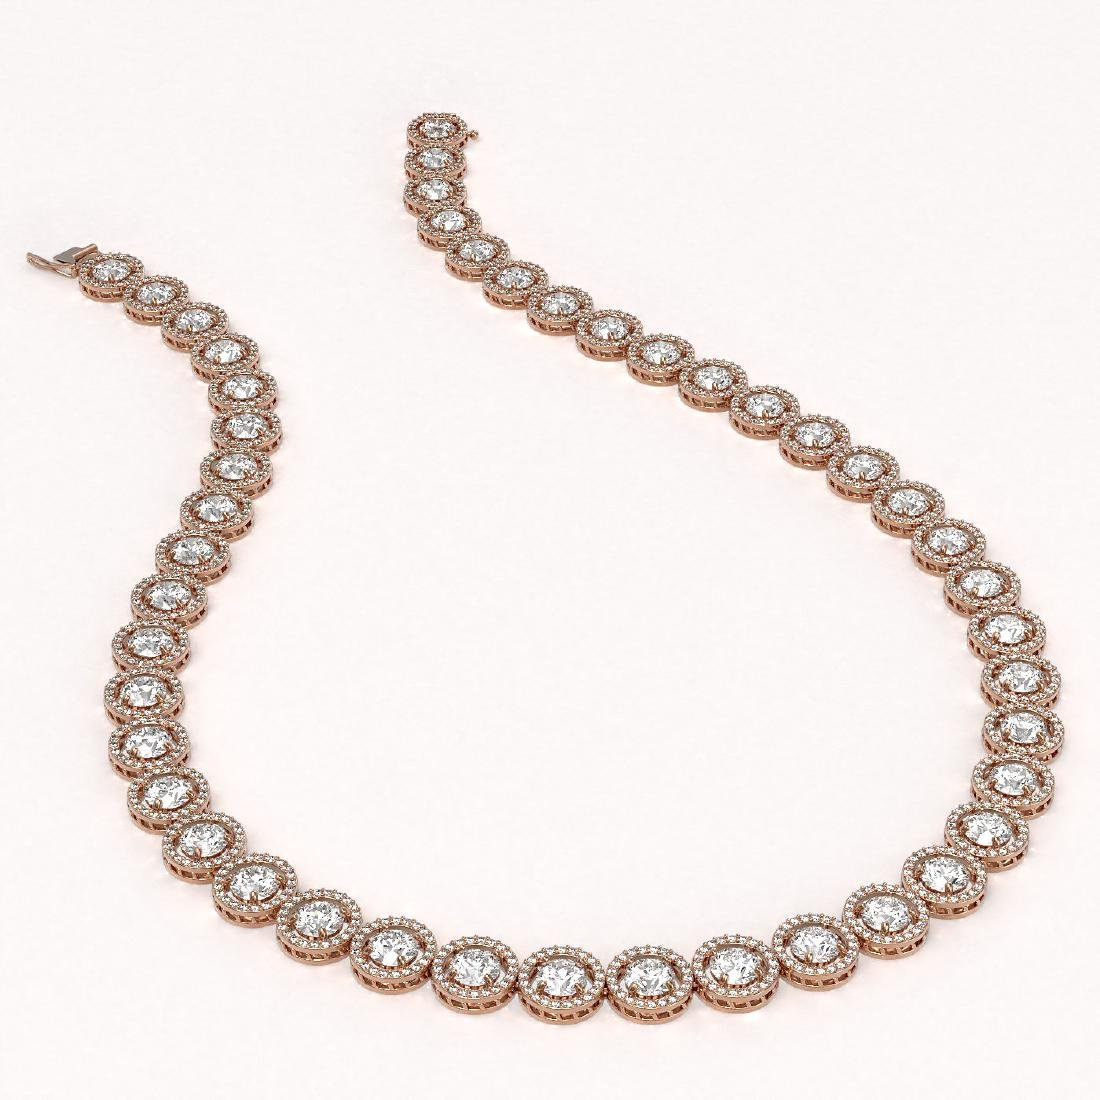 30.78 CTW Diamond Designer Necklace 18K Rose Gold - 2